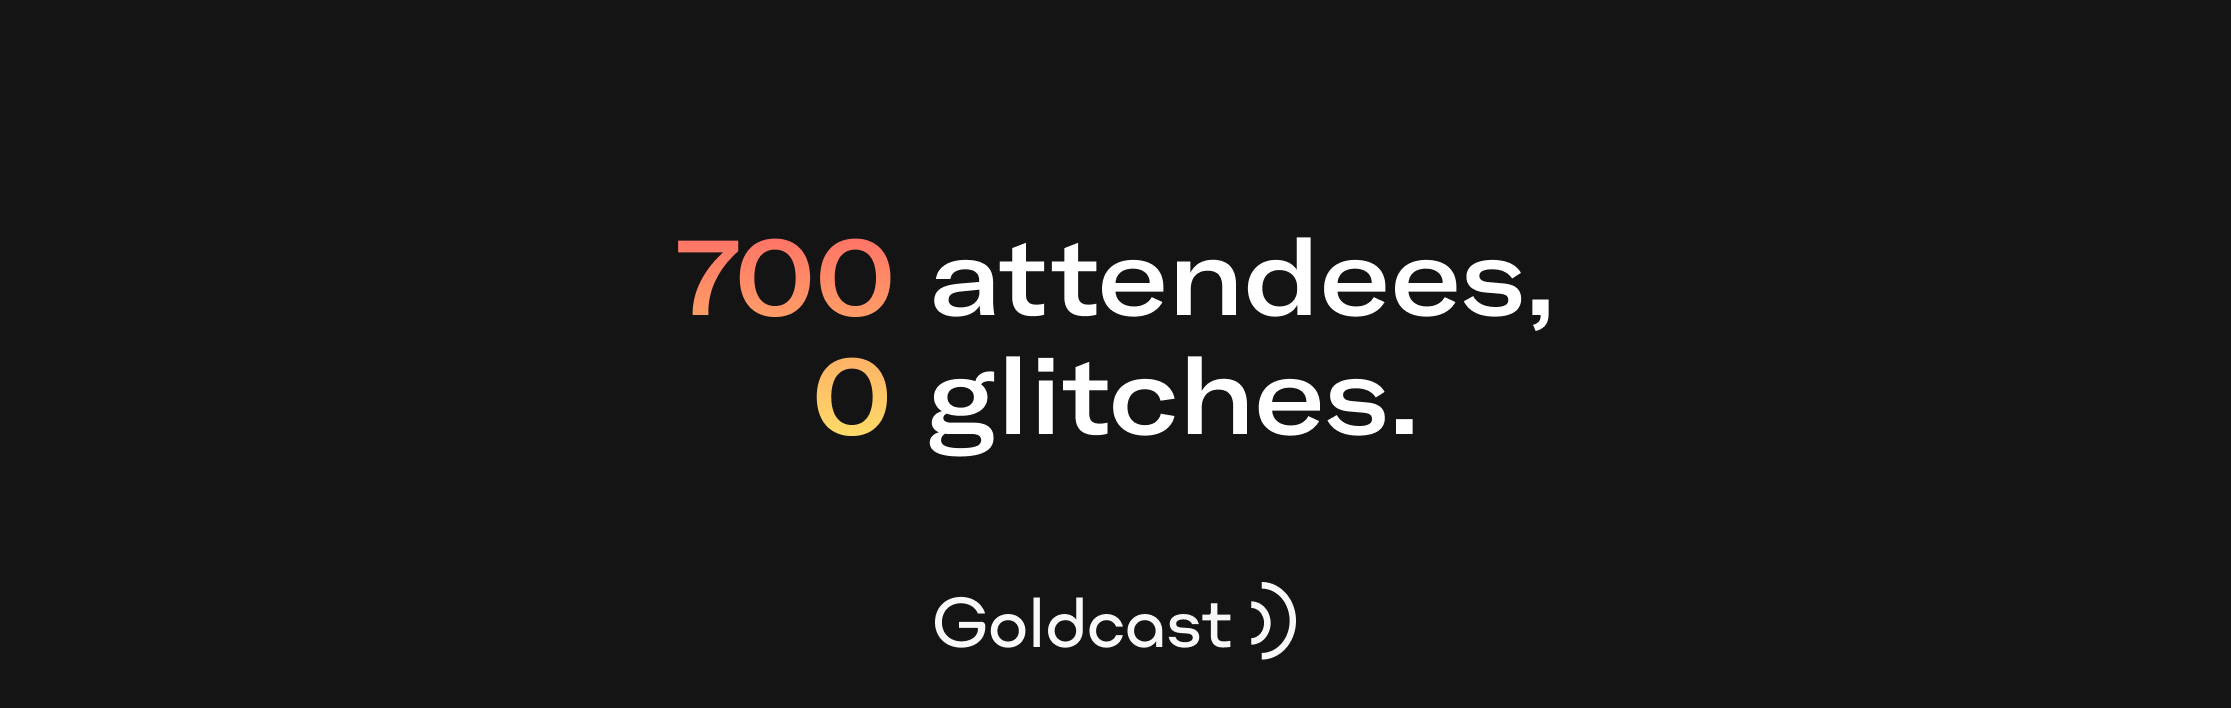 Case study: Afore's large scale virtual summit powered by Goldcast